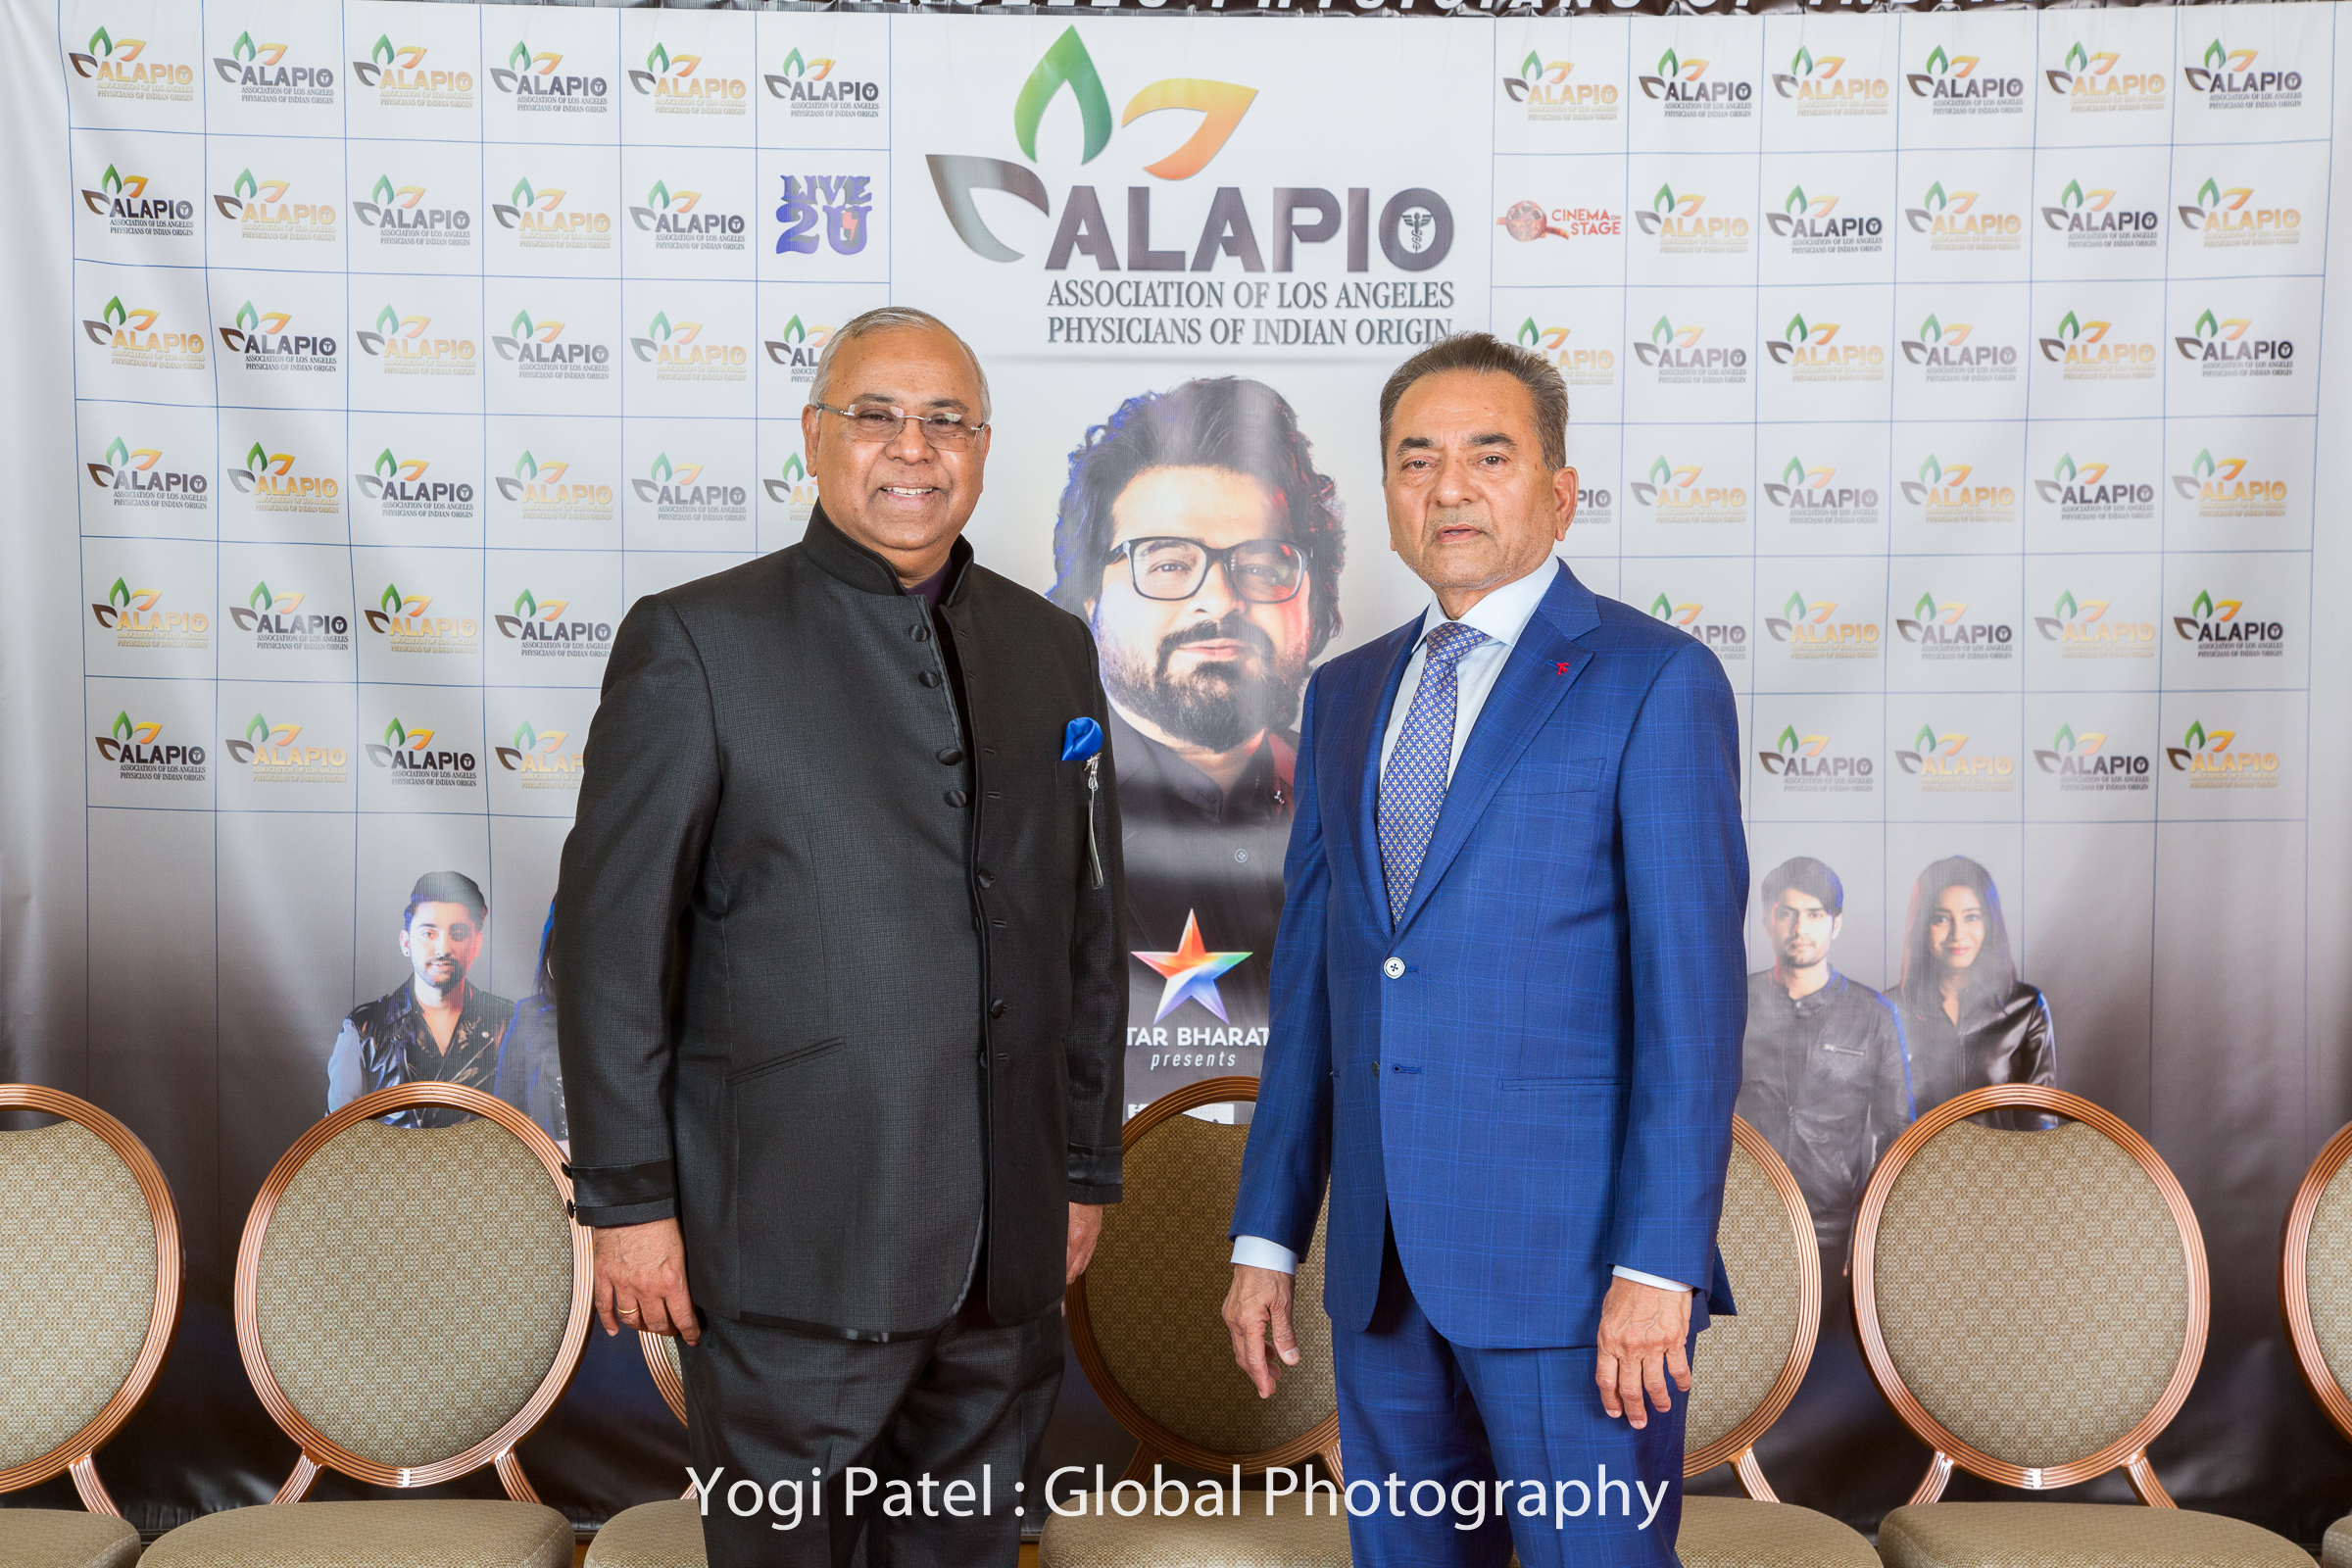 Yogi Patel - Global Photography0X2B2139.jpg